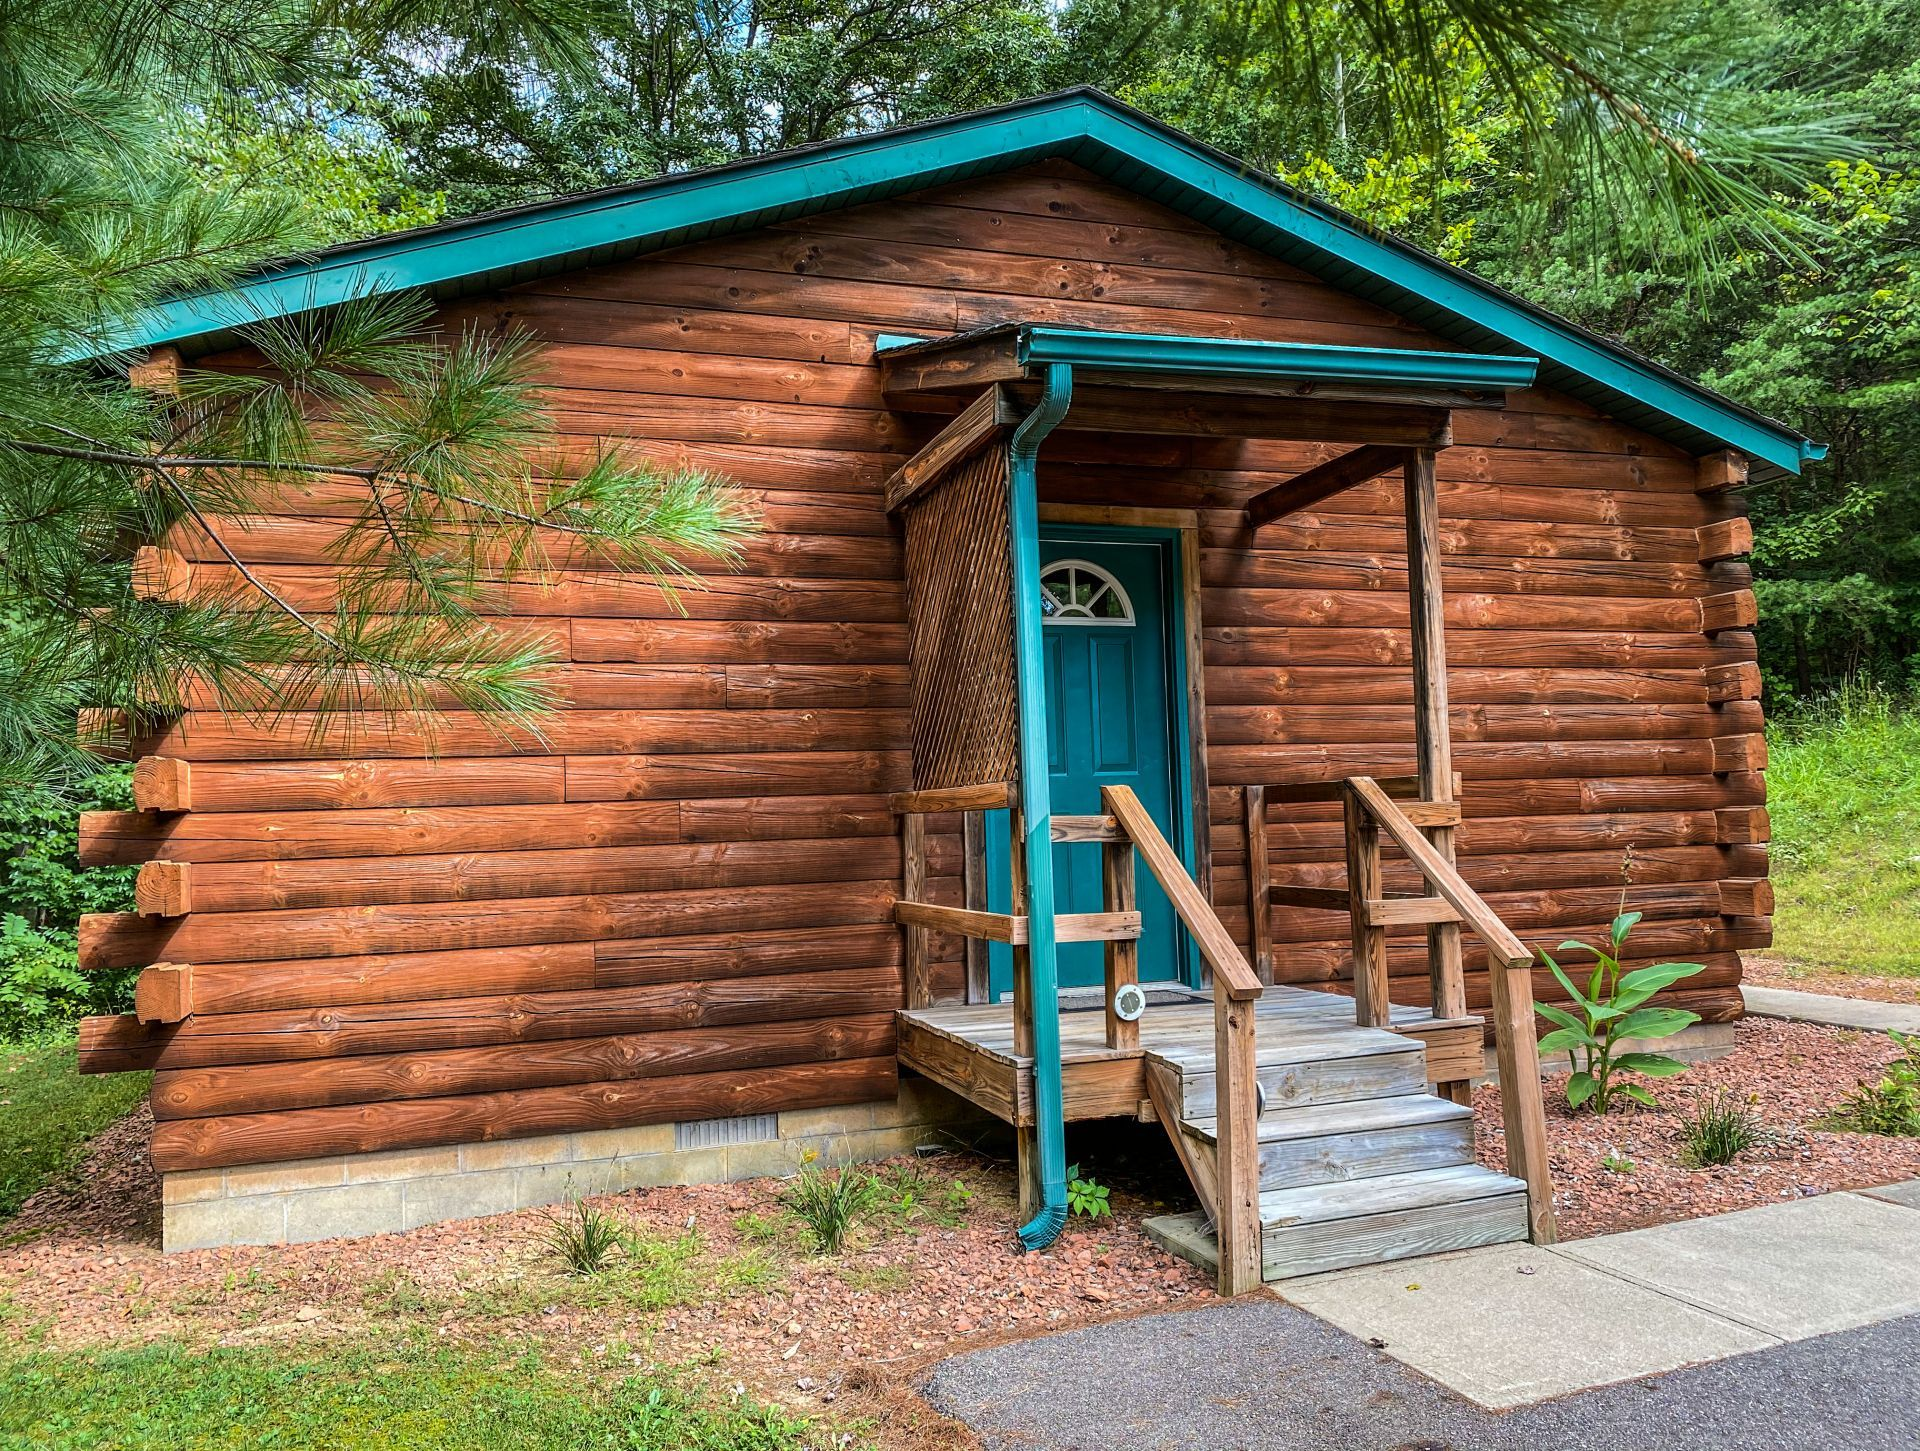 Briarwood Couples Cabin - Our one room couples cabin. Complete with everything you need for a quiet getaway.